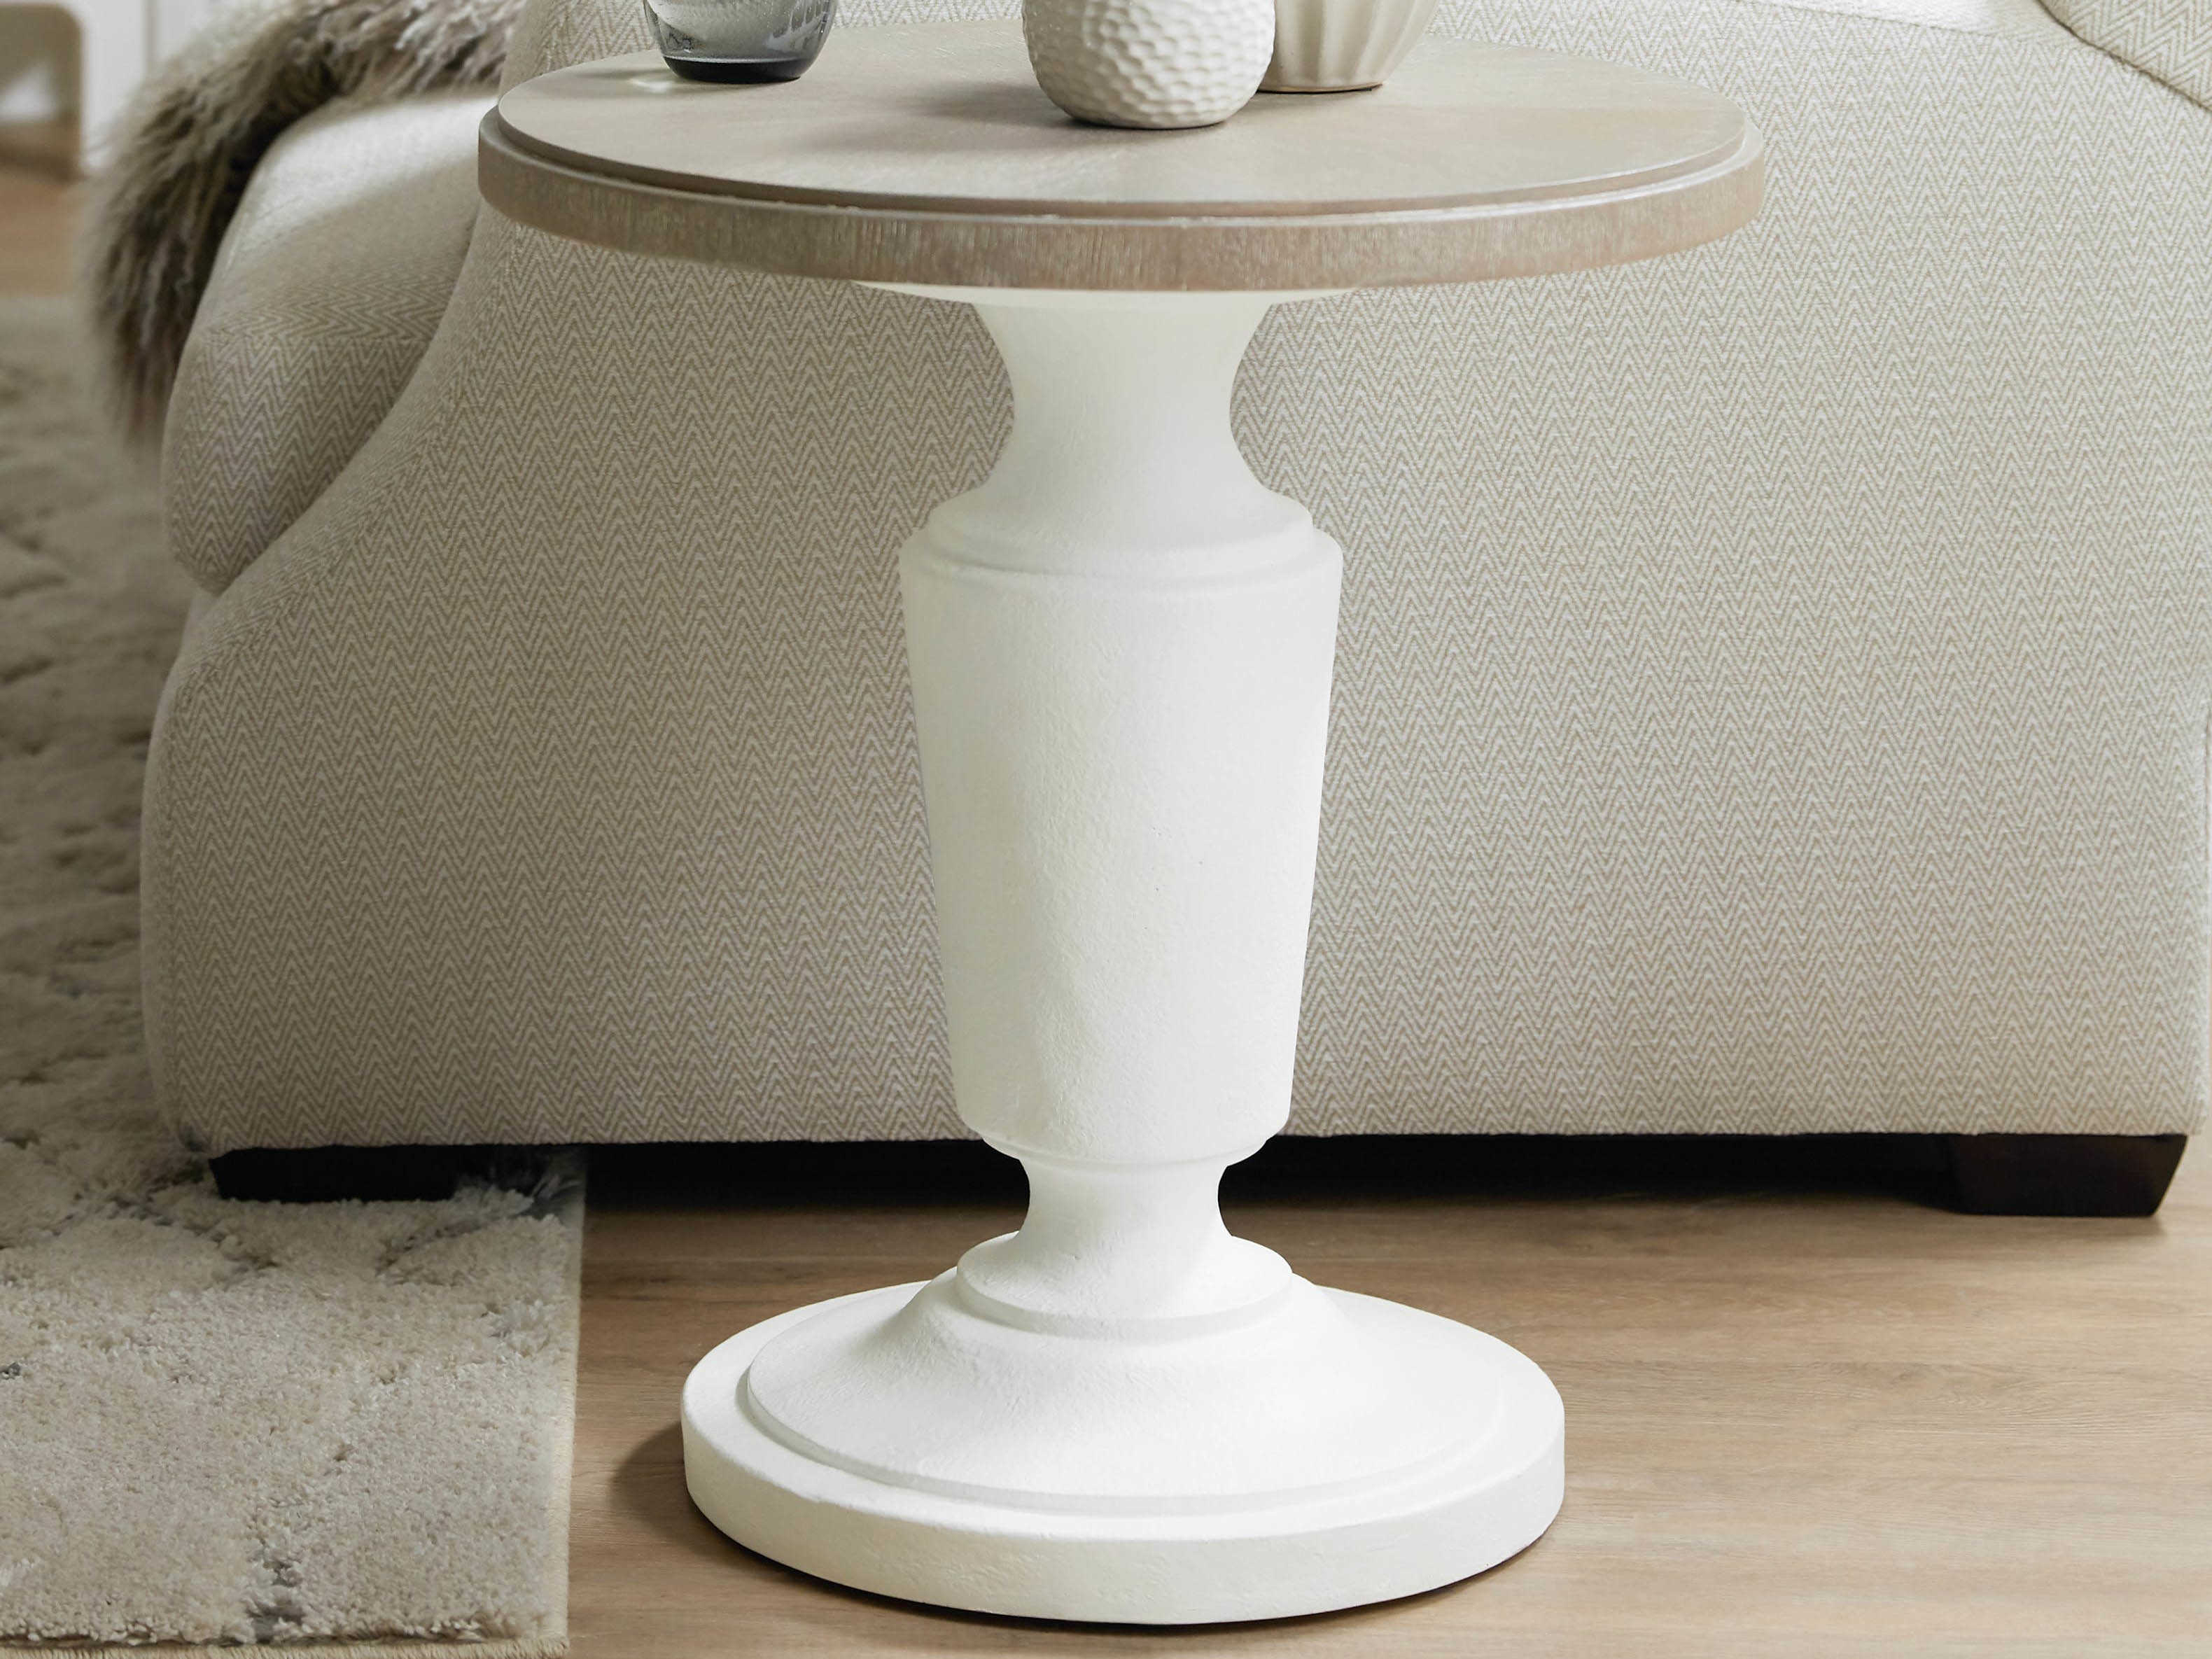 Furniture Modern Romance Taupe Grey Opaque Textured White 22 Wide Round Pedestal Table